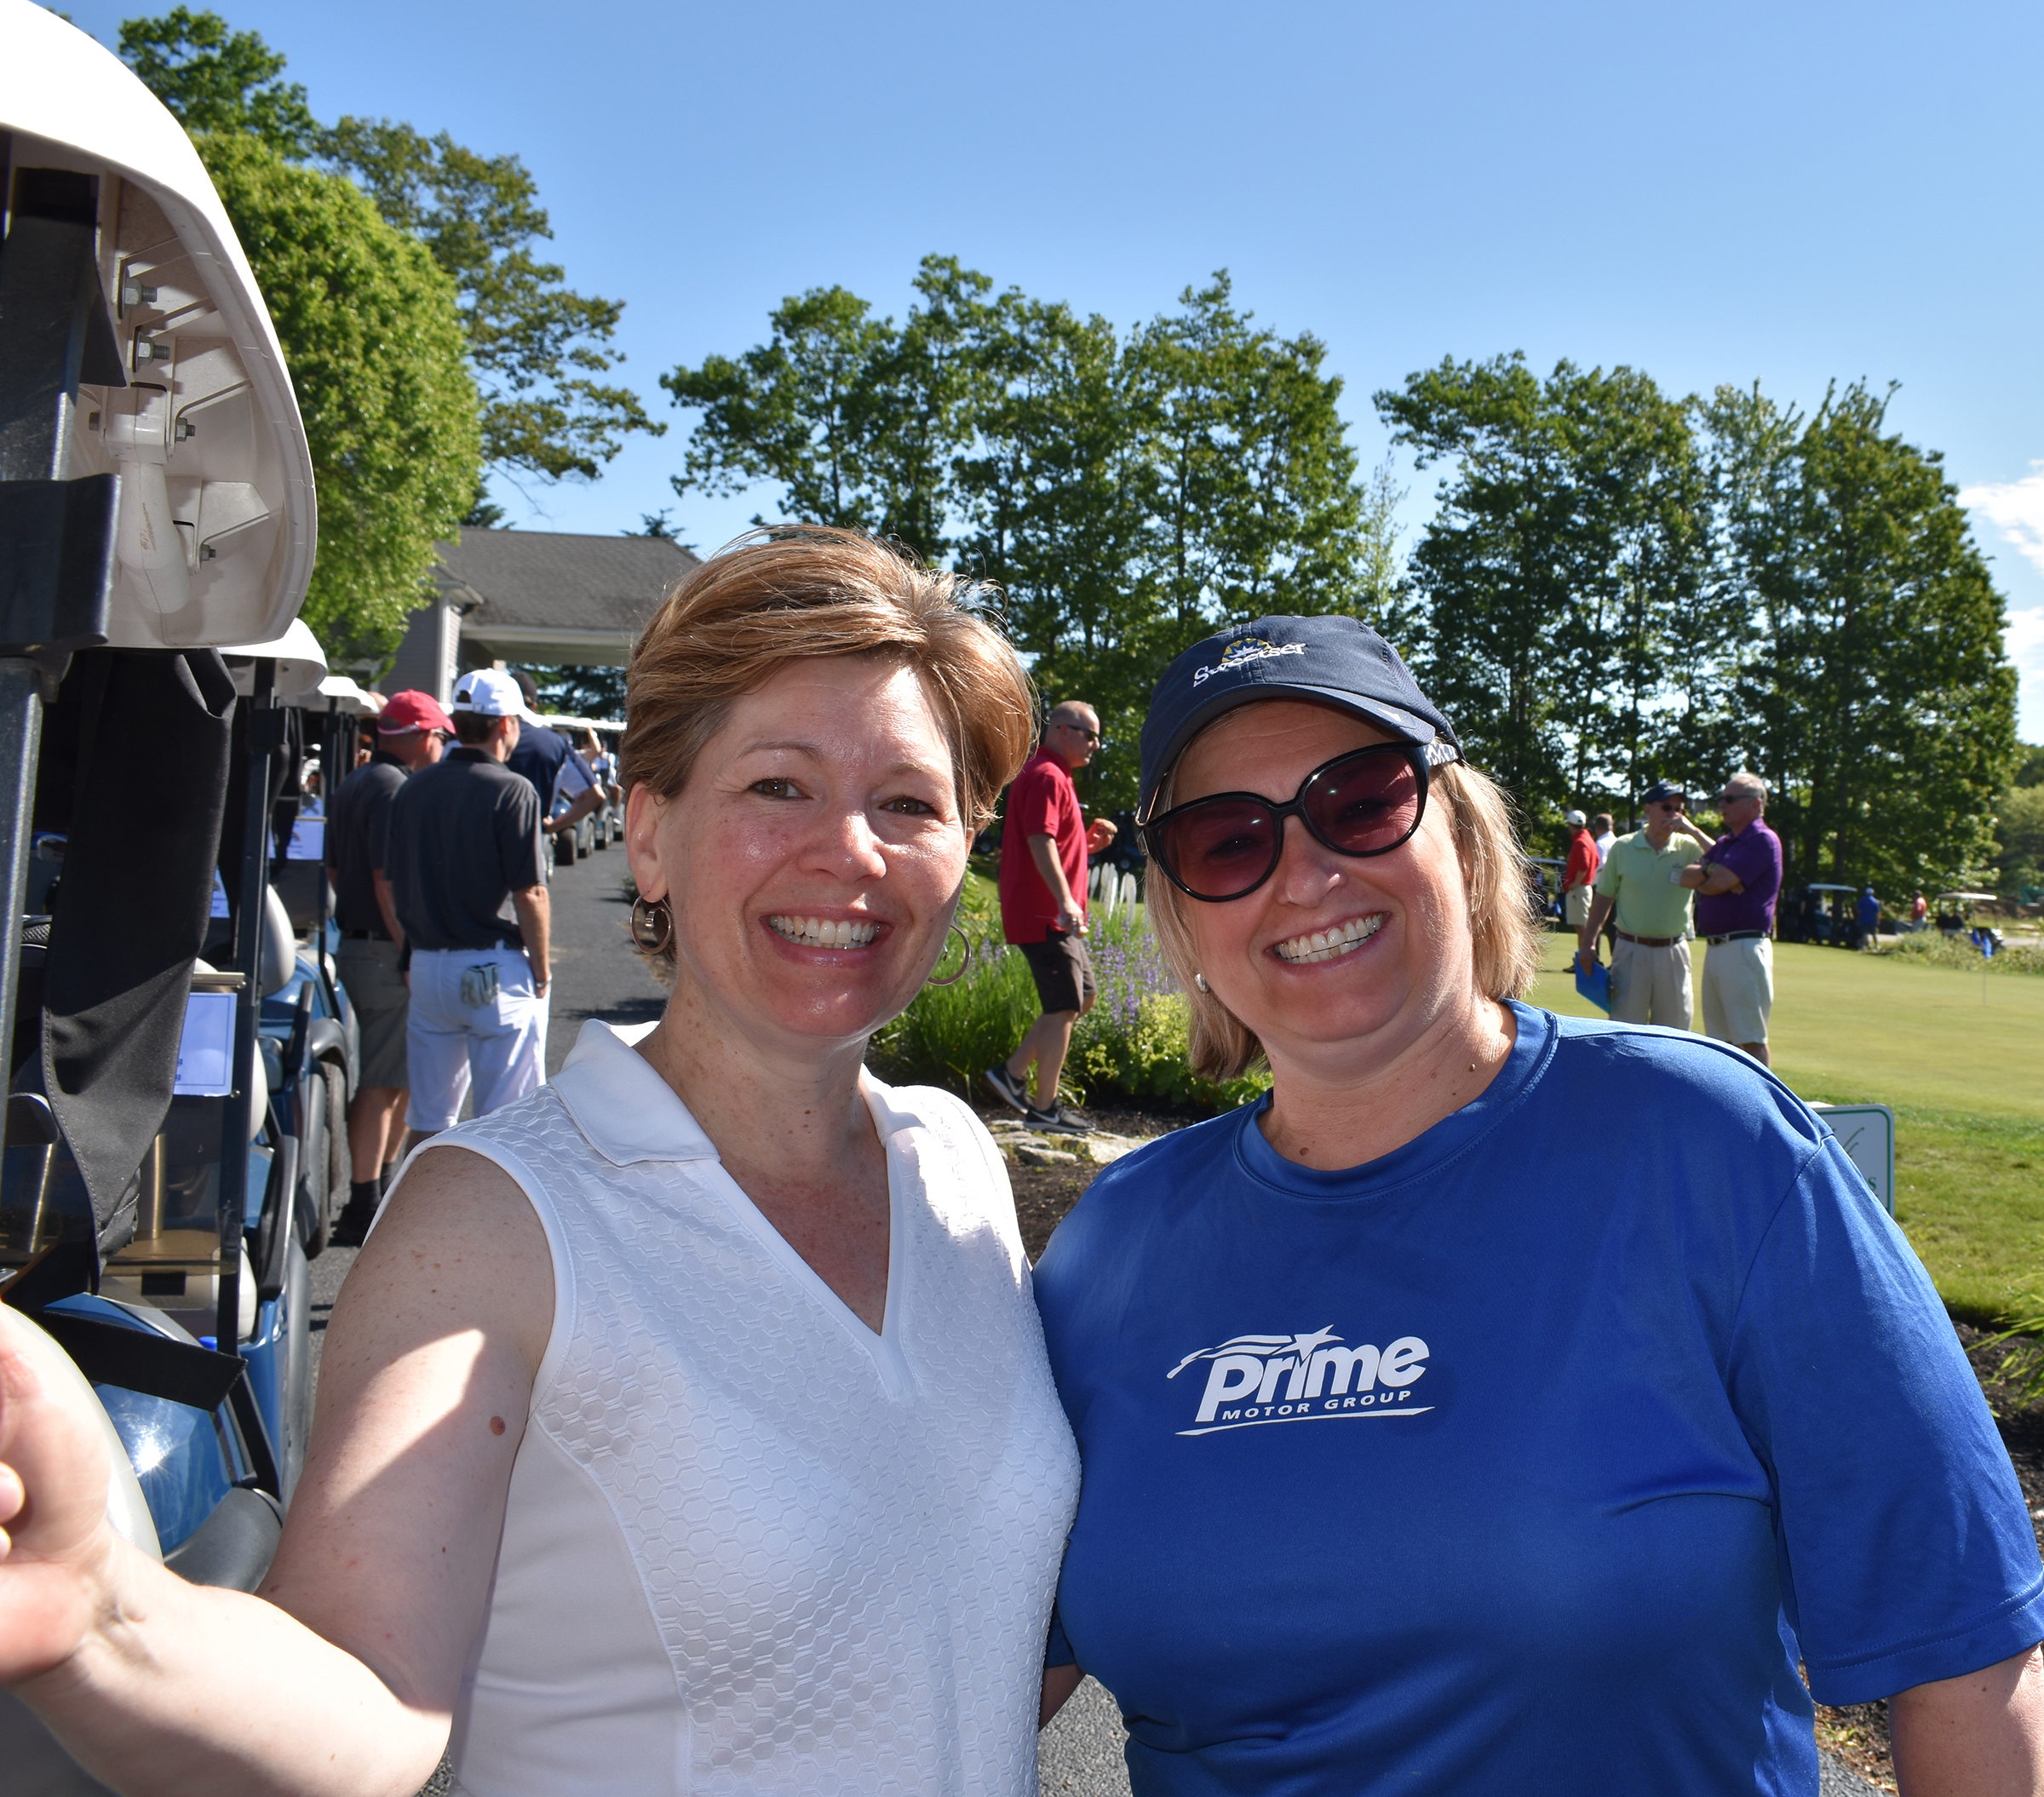 Prime Motor Group >> Sweetser Prime Motor Group Golf Classic Sweetser